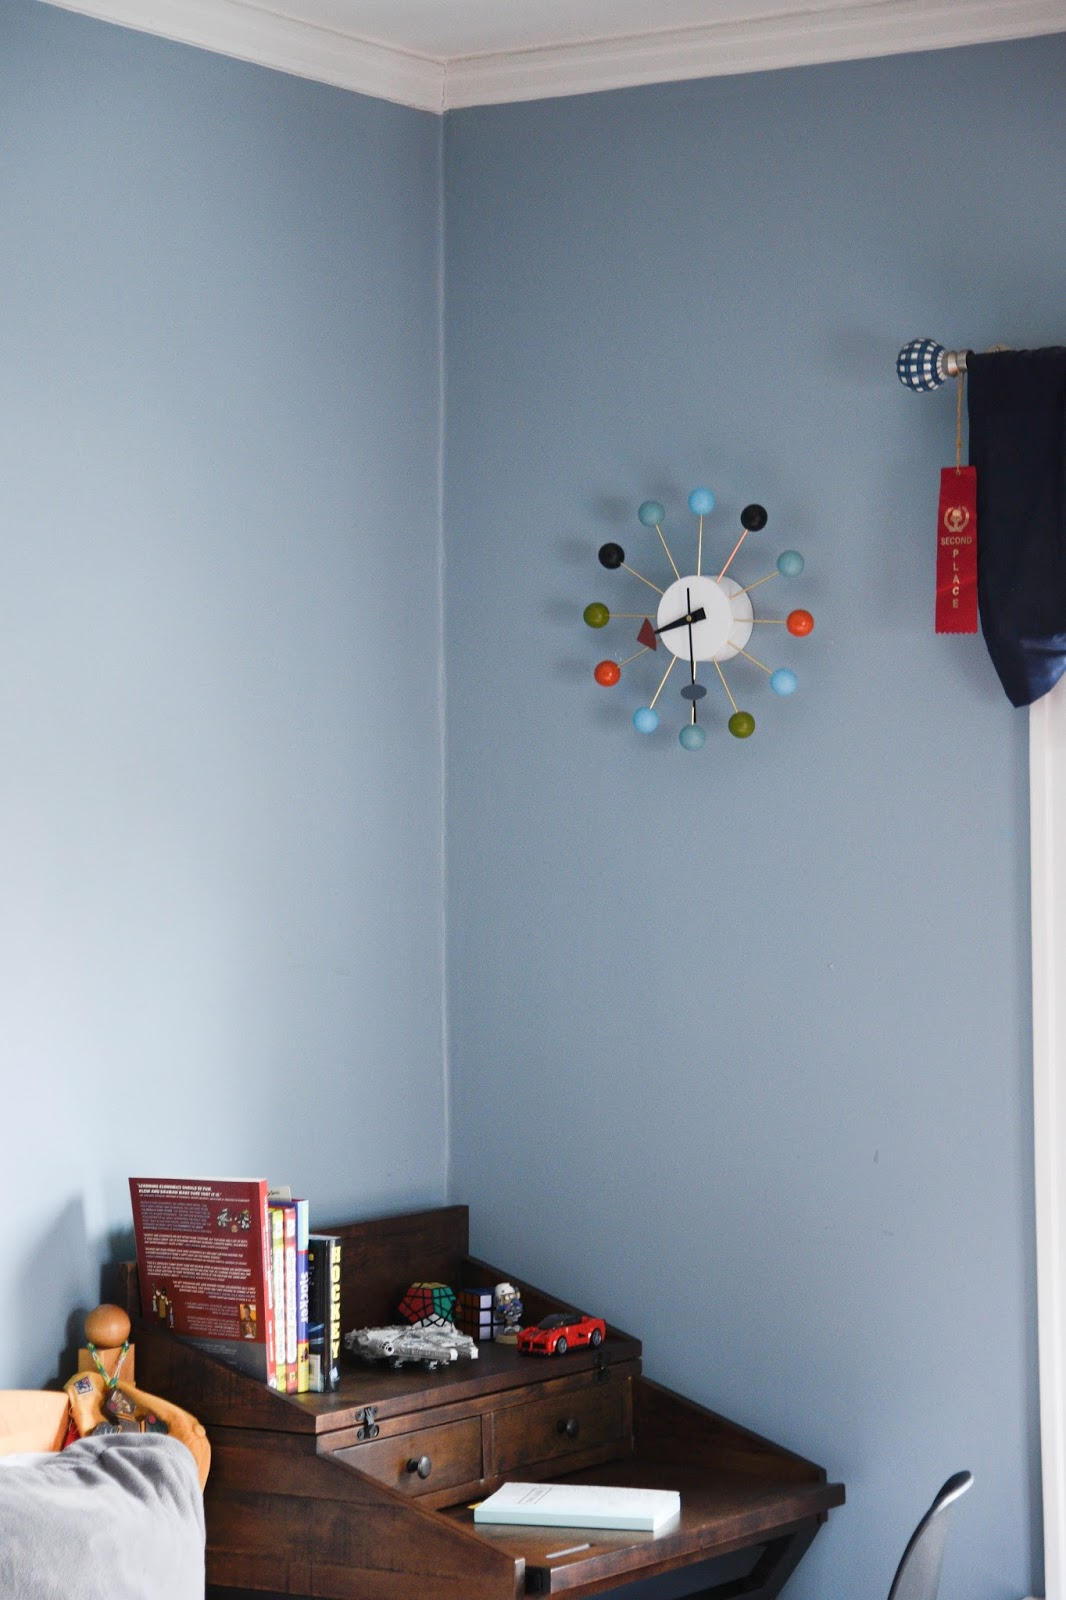 Small space desk ideas for kids room interior styling tips for kids spaces www.homewithkeki.com